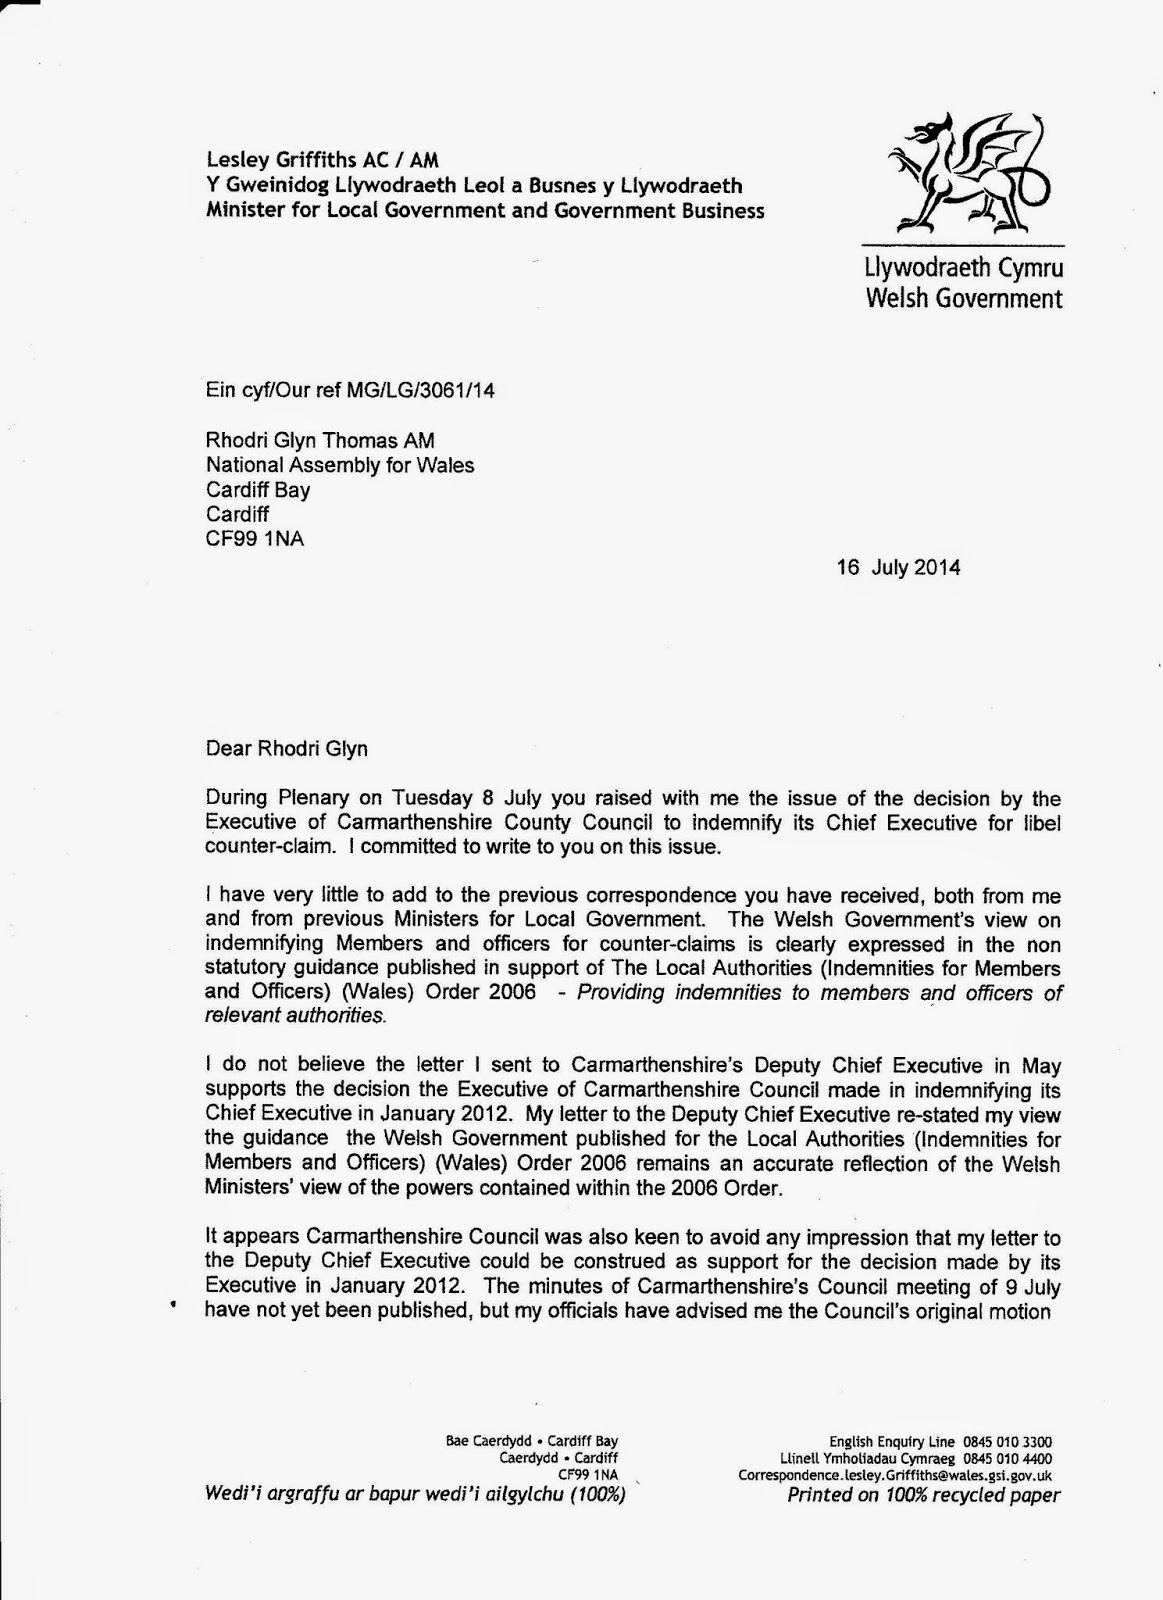 carmarthenshire planning problems and more 2014 i do not believe the letter i sent to carmarthenshire s deputy chief executive in supports the decision the executive of carmarthenshire council